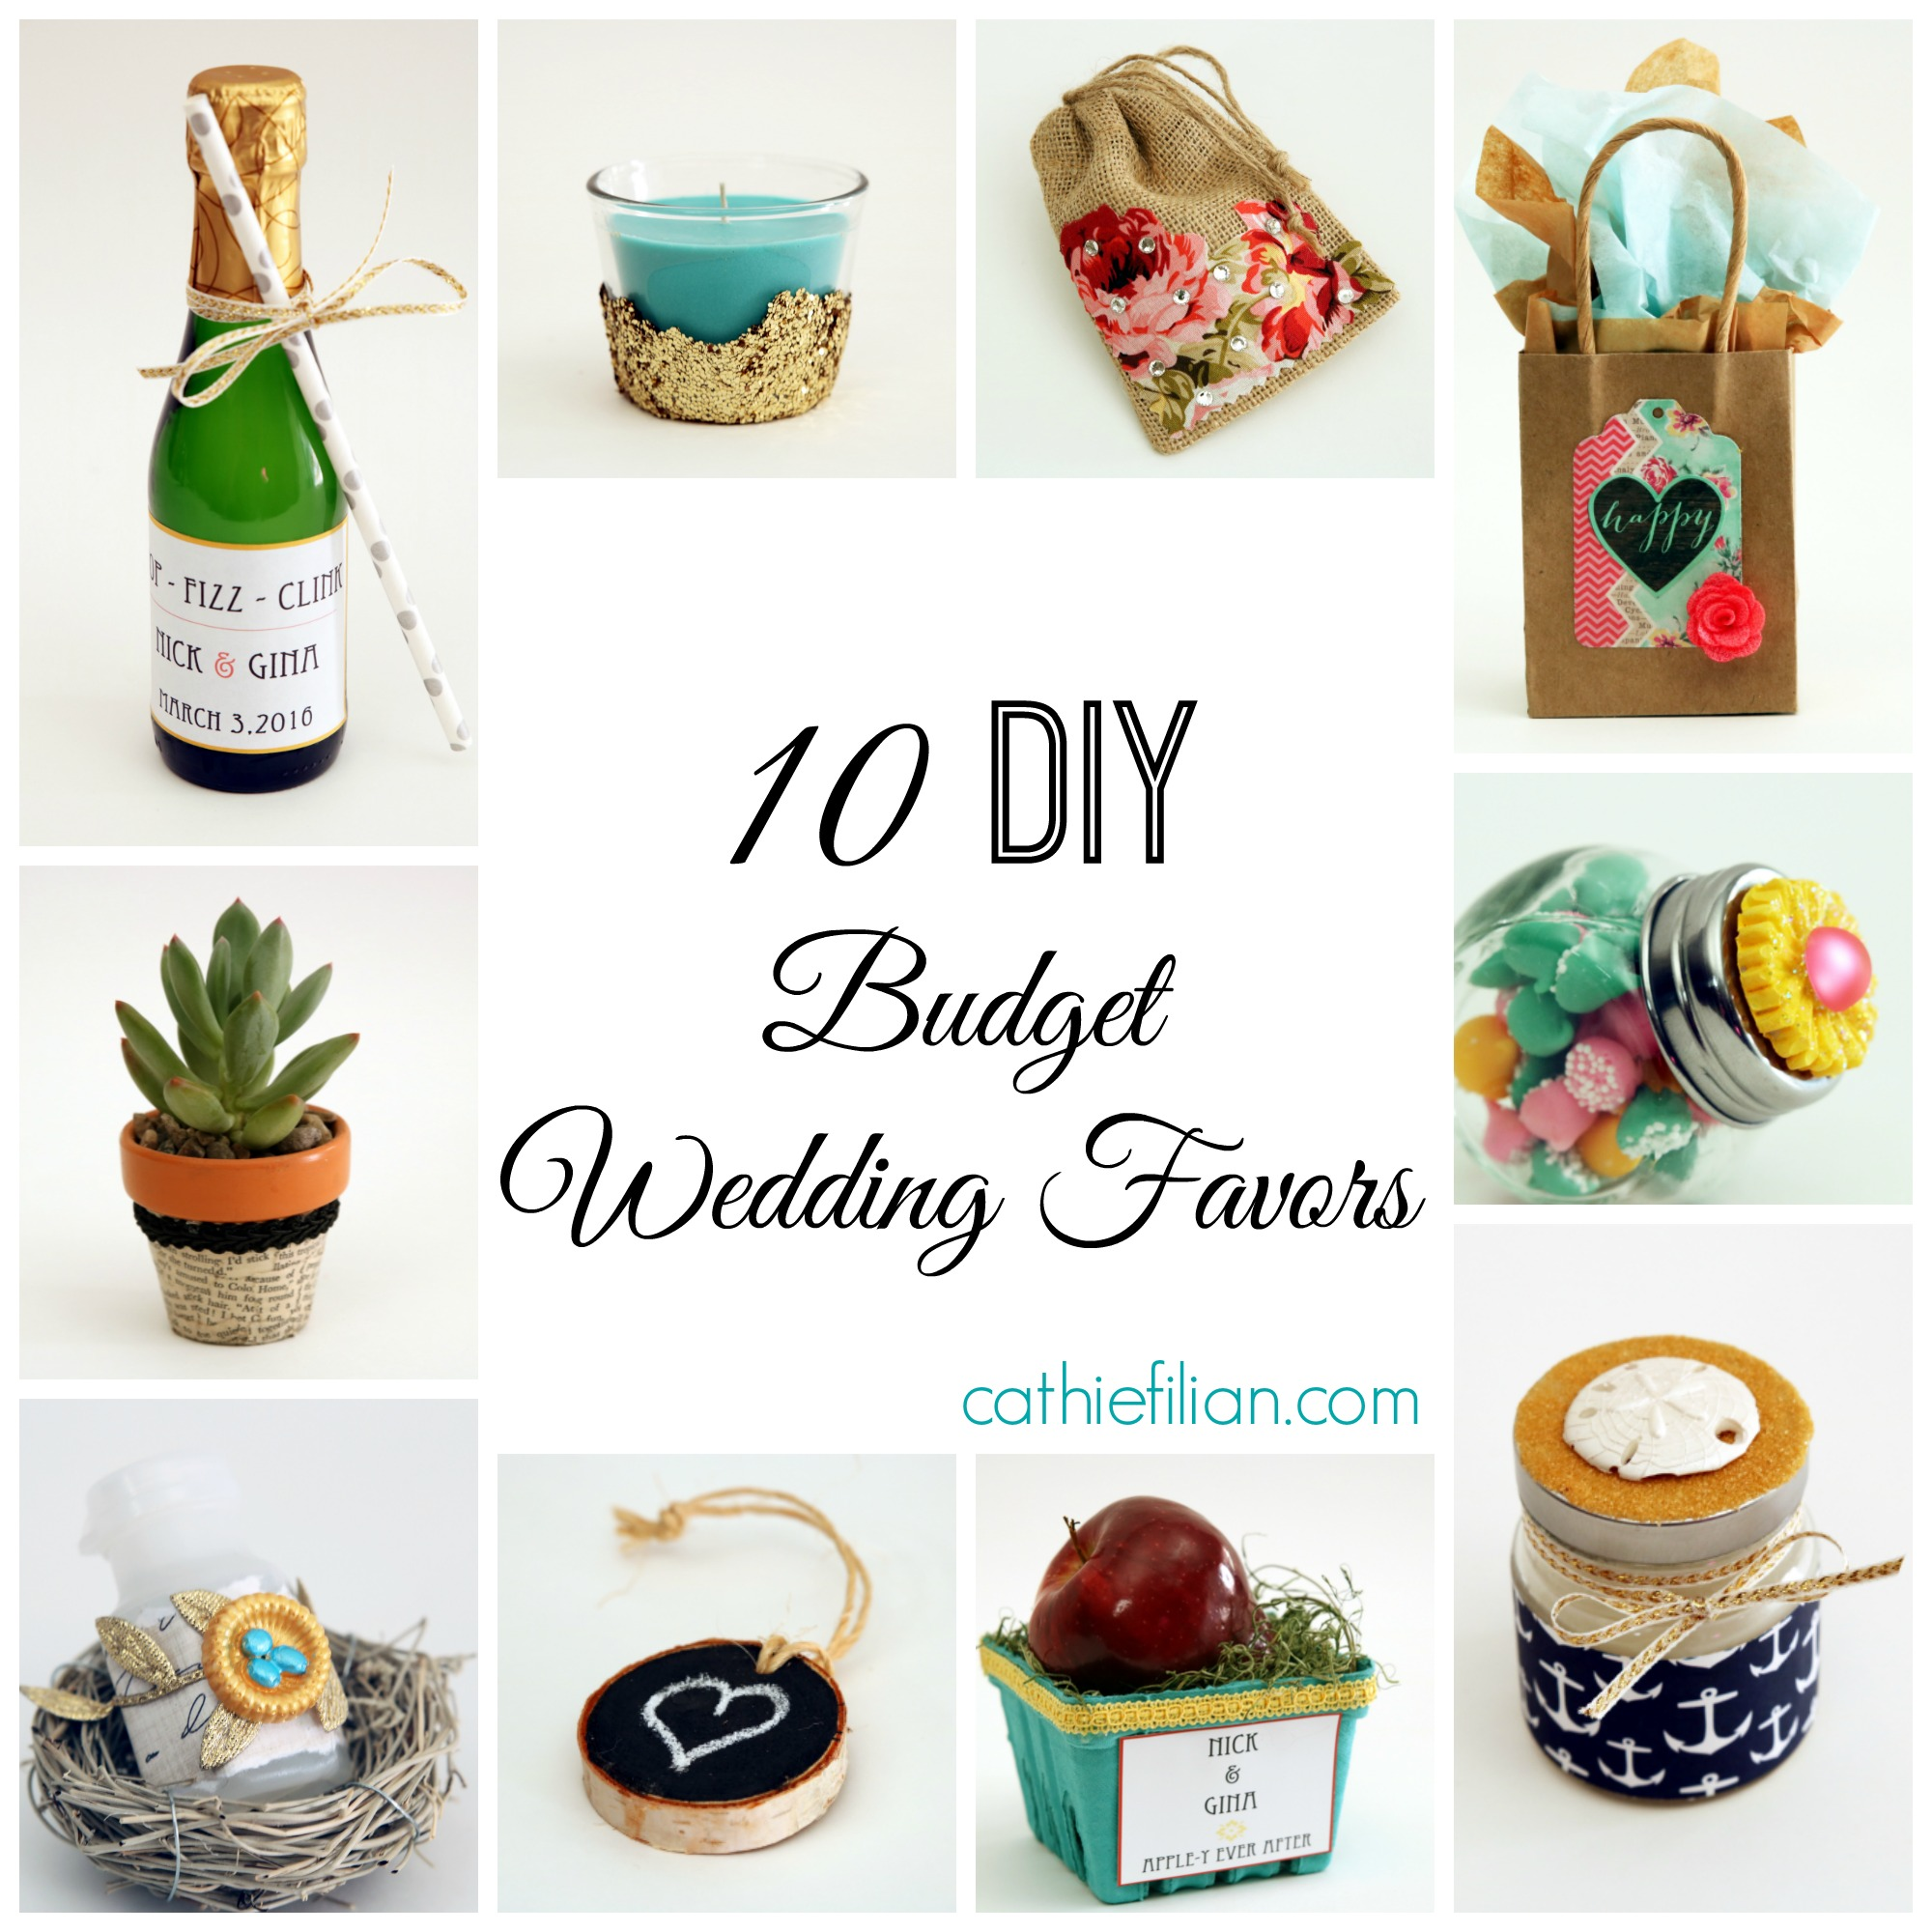 Wedding Party Favor Ideas: 10 DIY Budget Wedding Favor Ideas